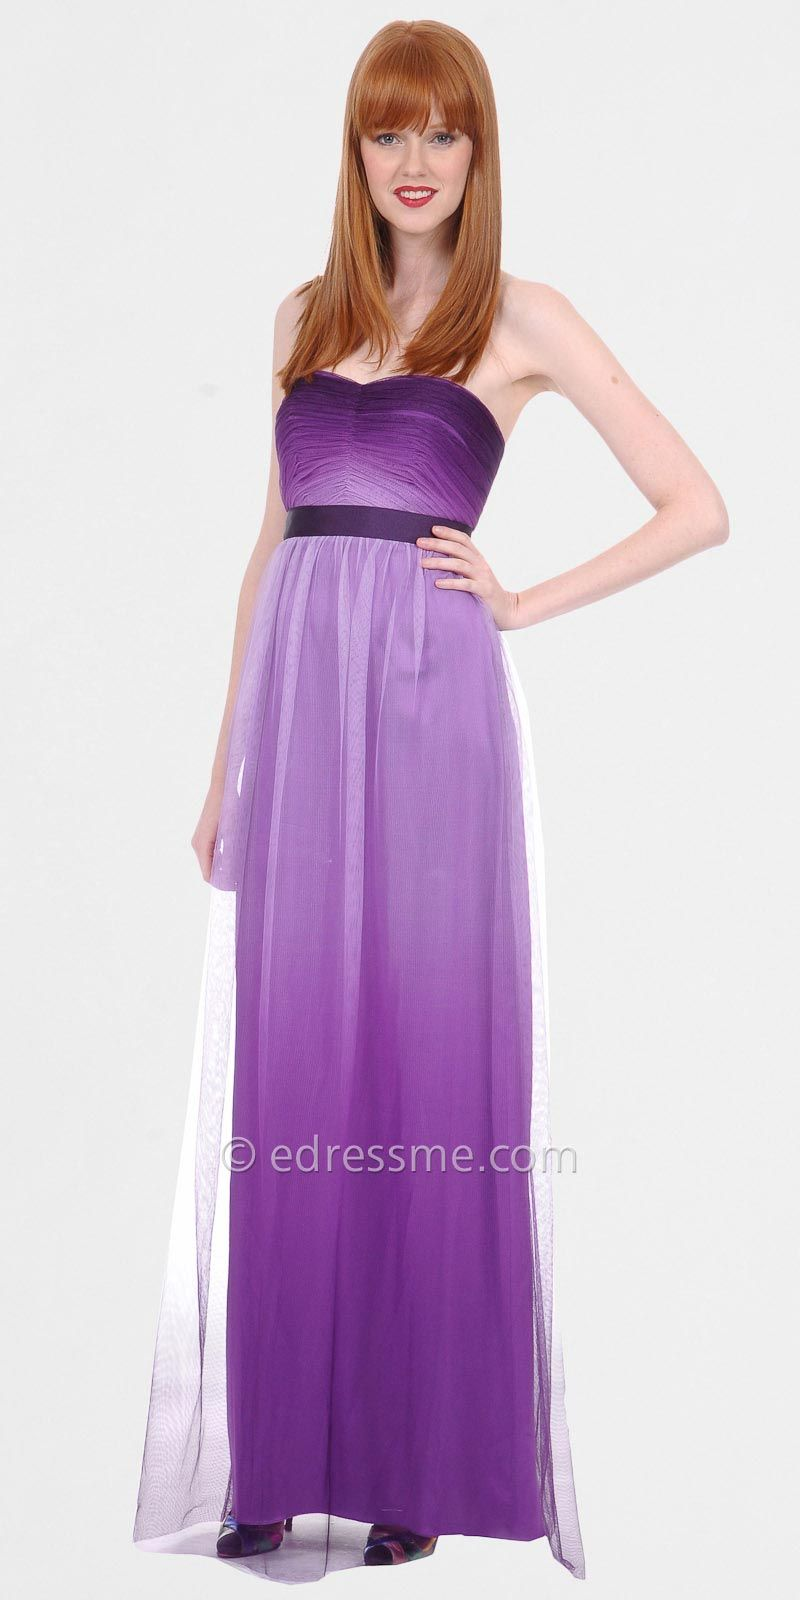 Purple bridesmaid dress love this one!!! | THE Wedding | Pinterest